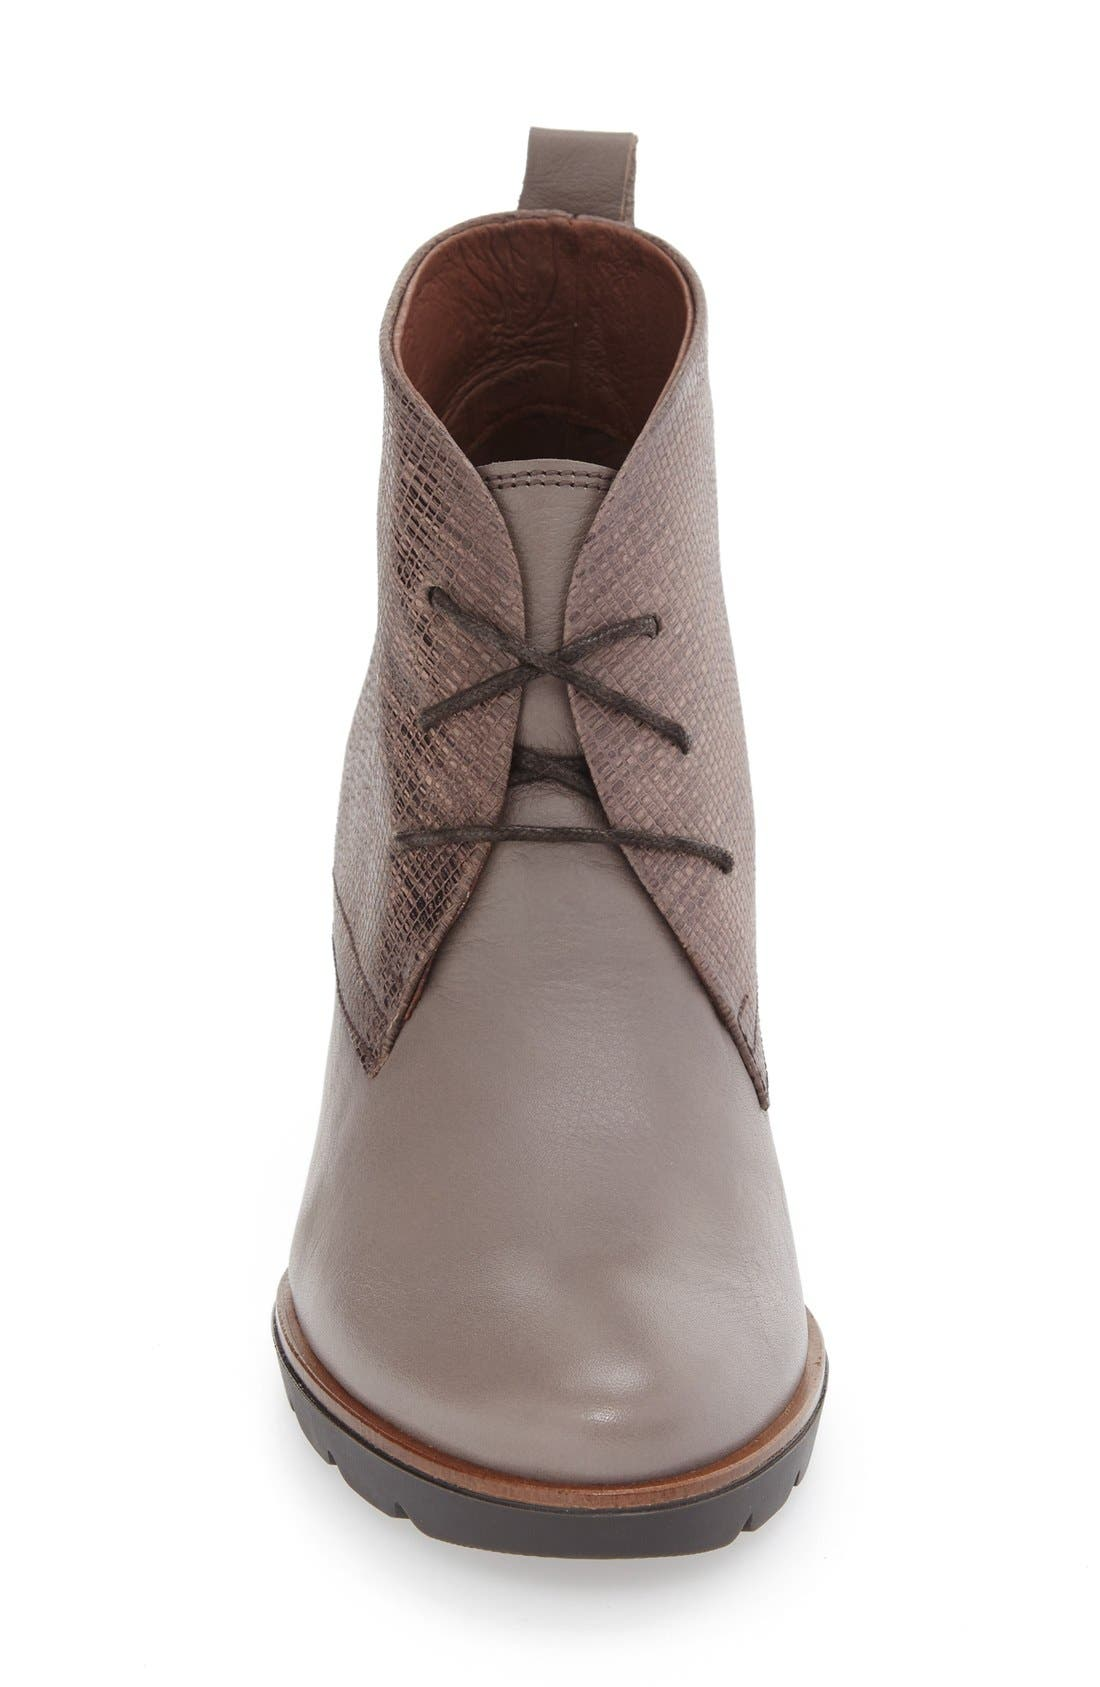 'Harmonie' Lace-Up Wedge Bootie,                             Alternate thumbnail 3, color,                             Brown Leather